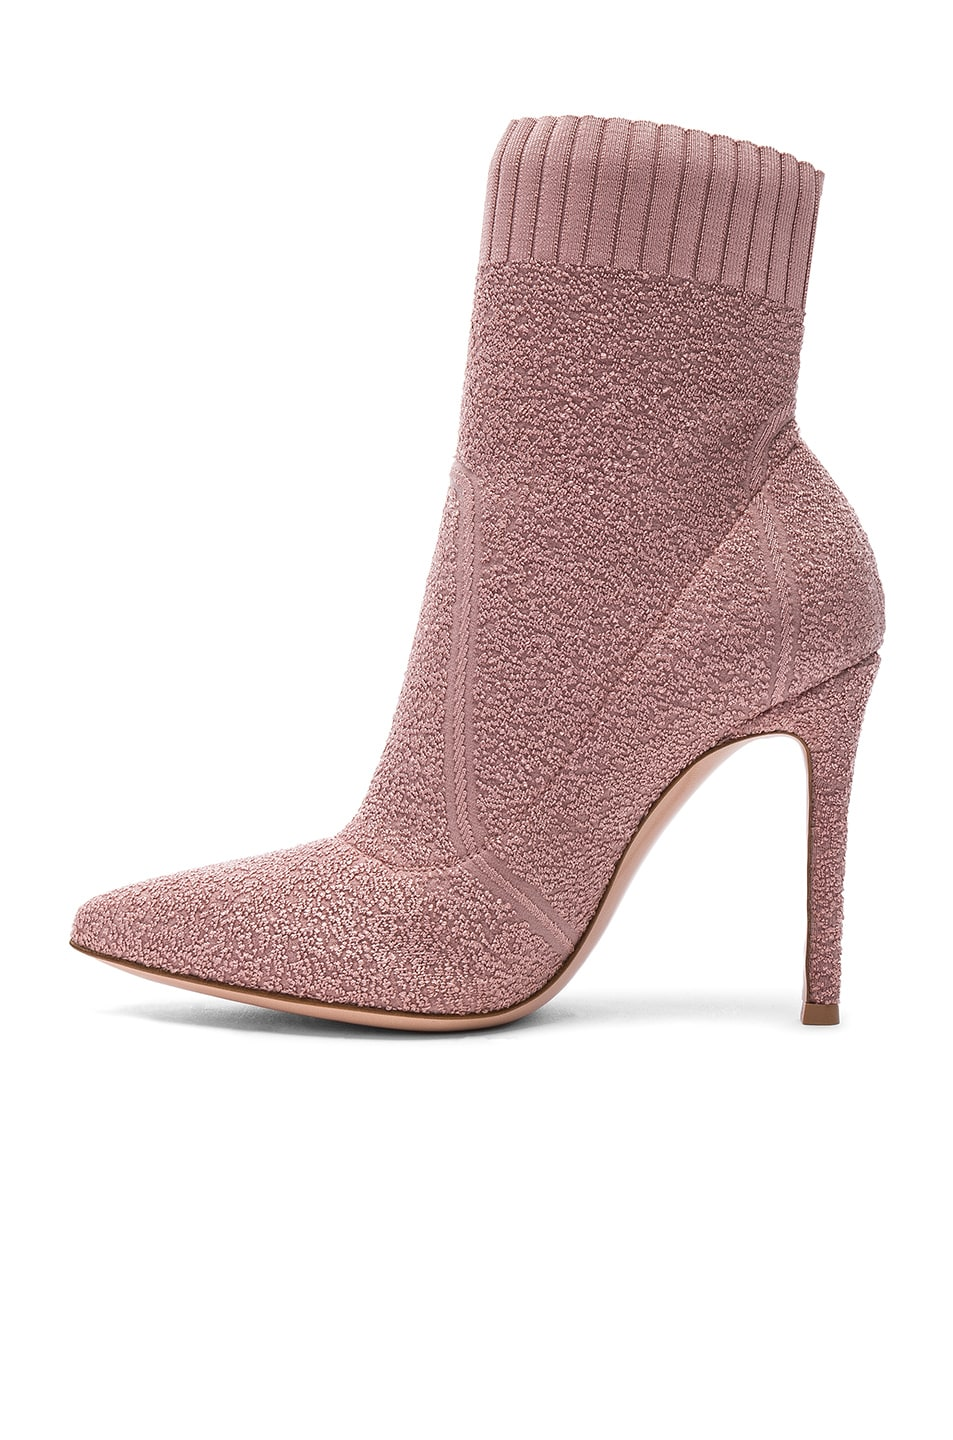 Image 5 of Gianvito Rossi Boucle Knit Fiona Ankle Booties in Dahlia